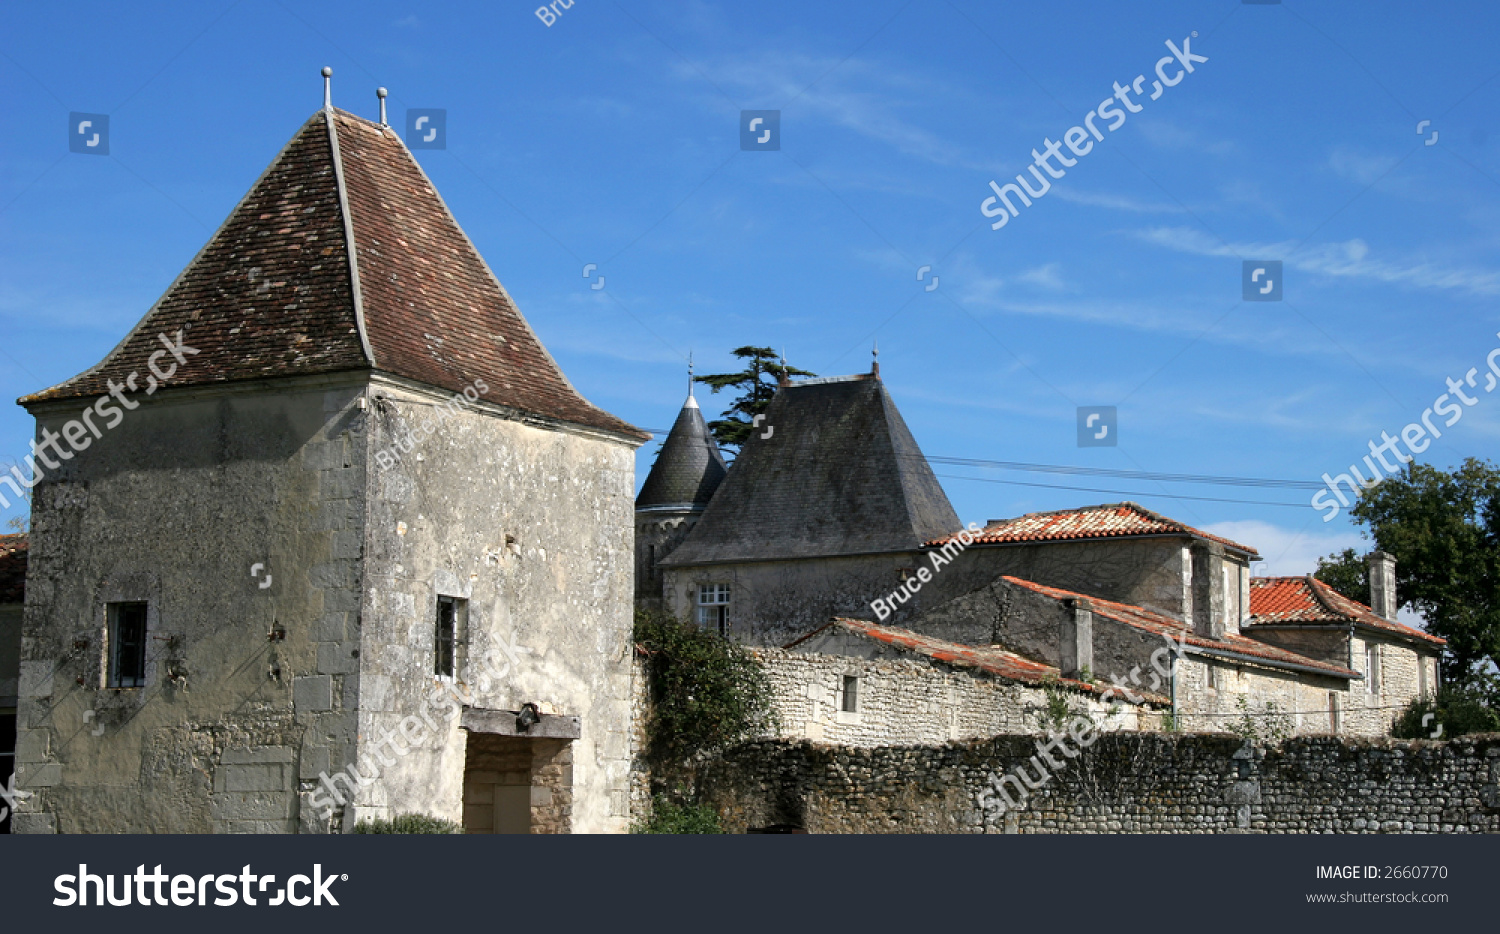 Small chateau in france stock photo 2660770 shutterstock for Small chateau